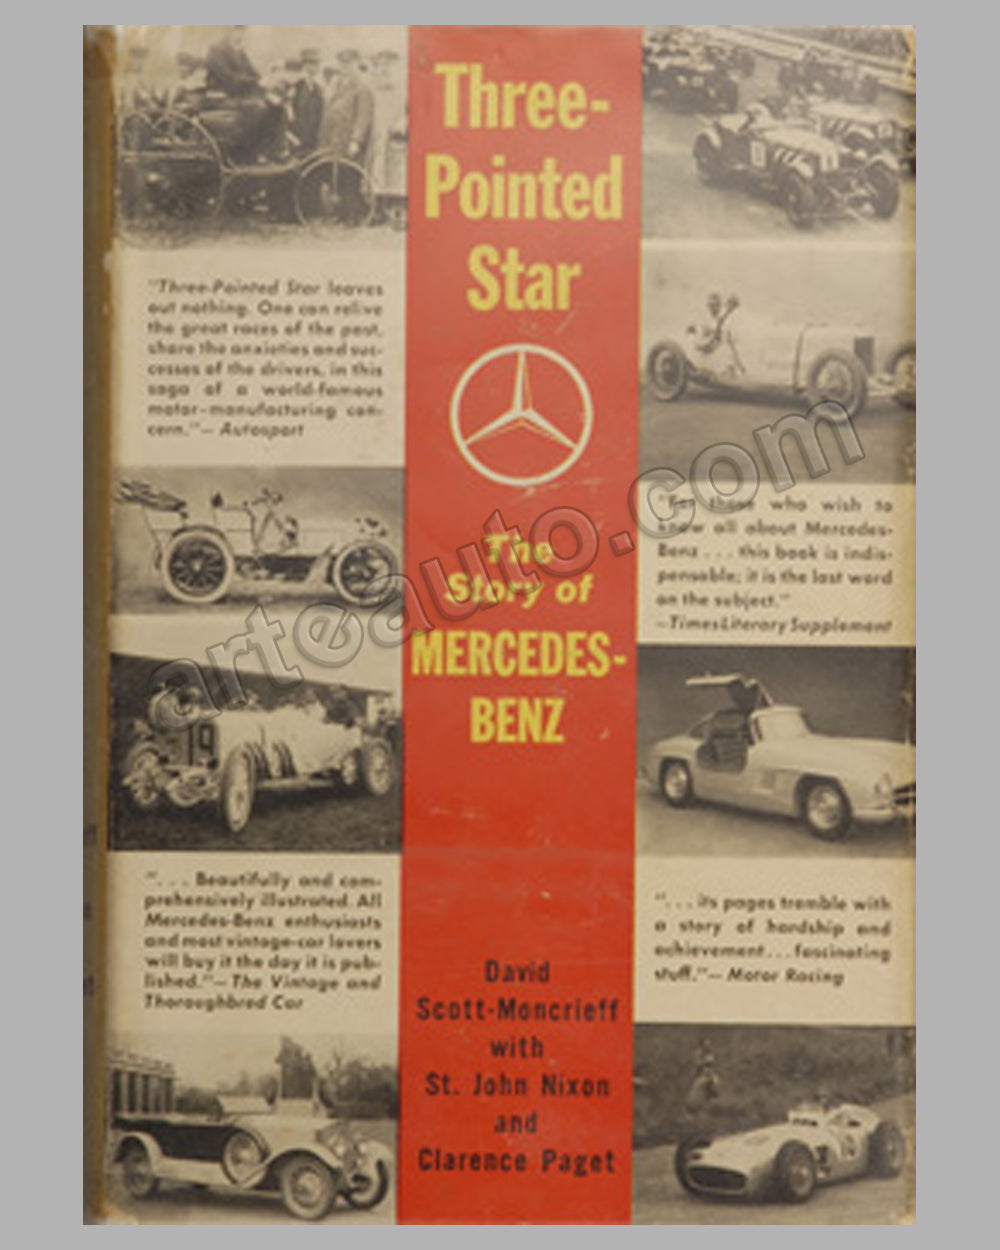 Three Pointed Star - The Story of Mercedes-Benz book